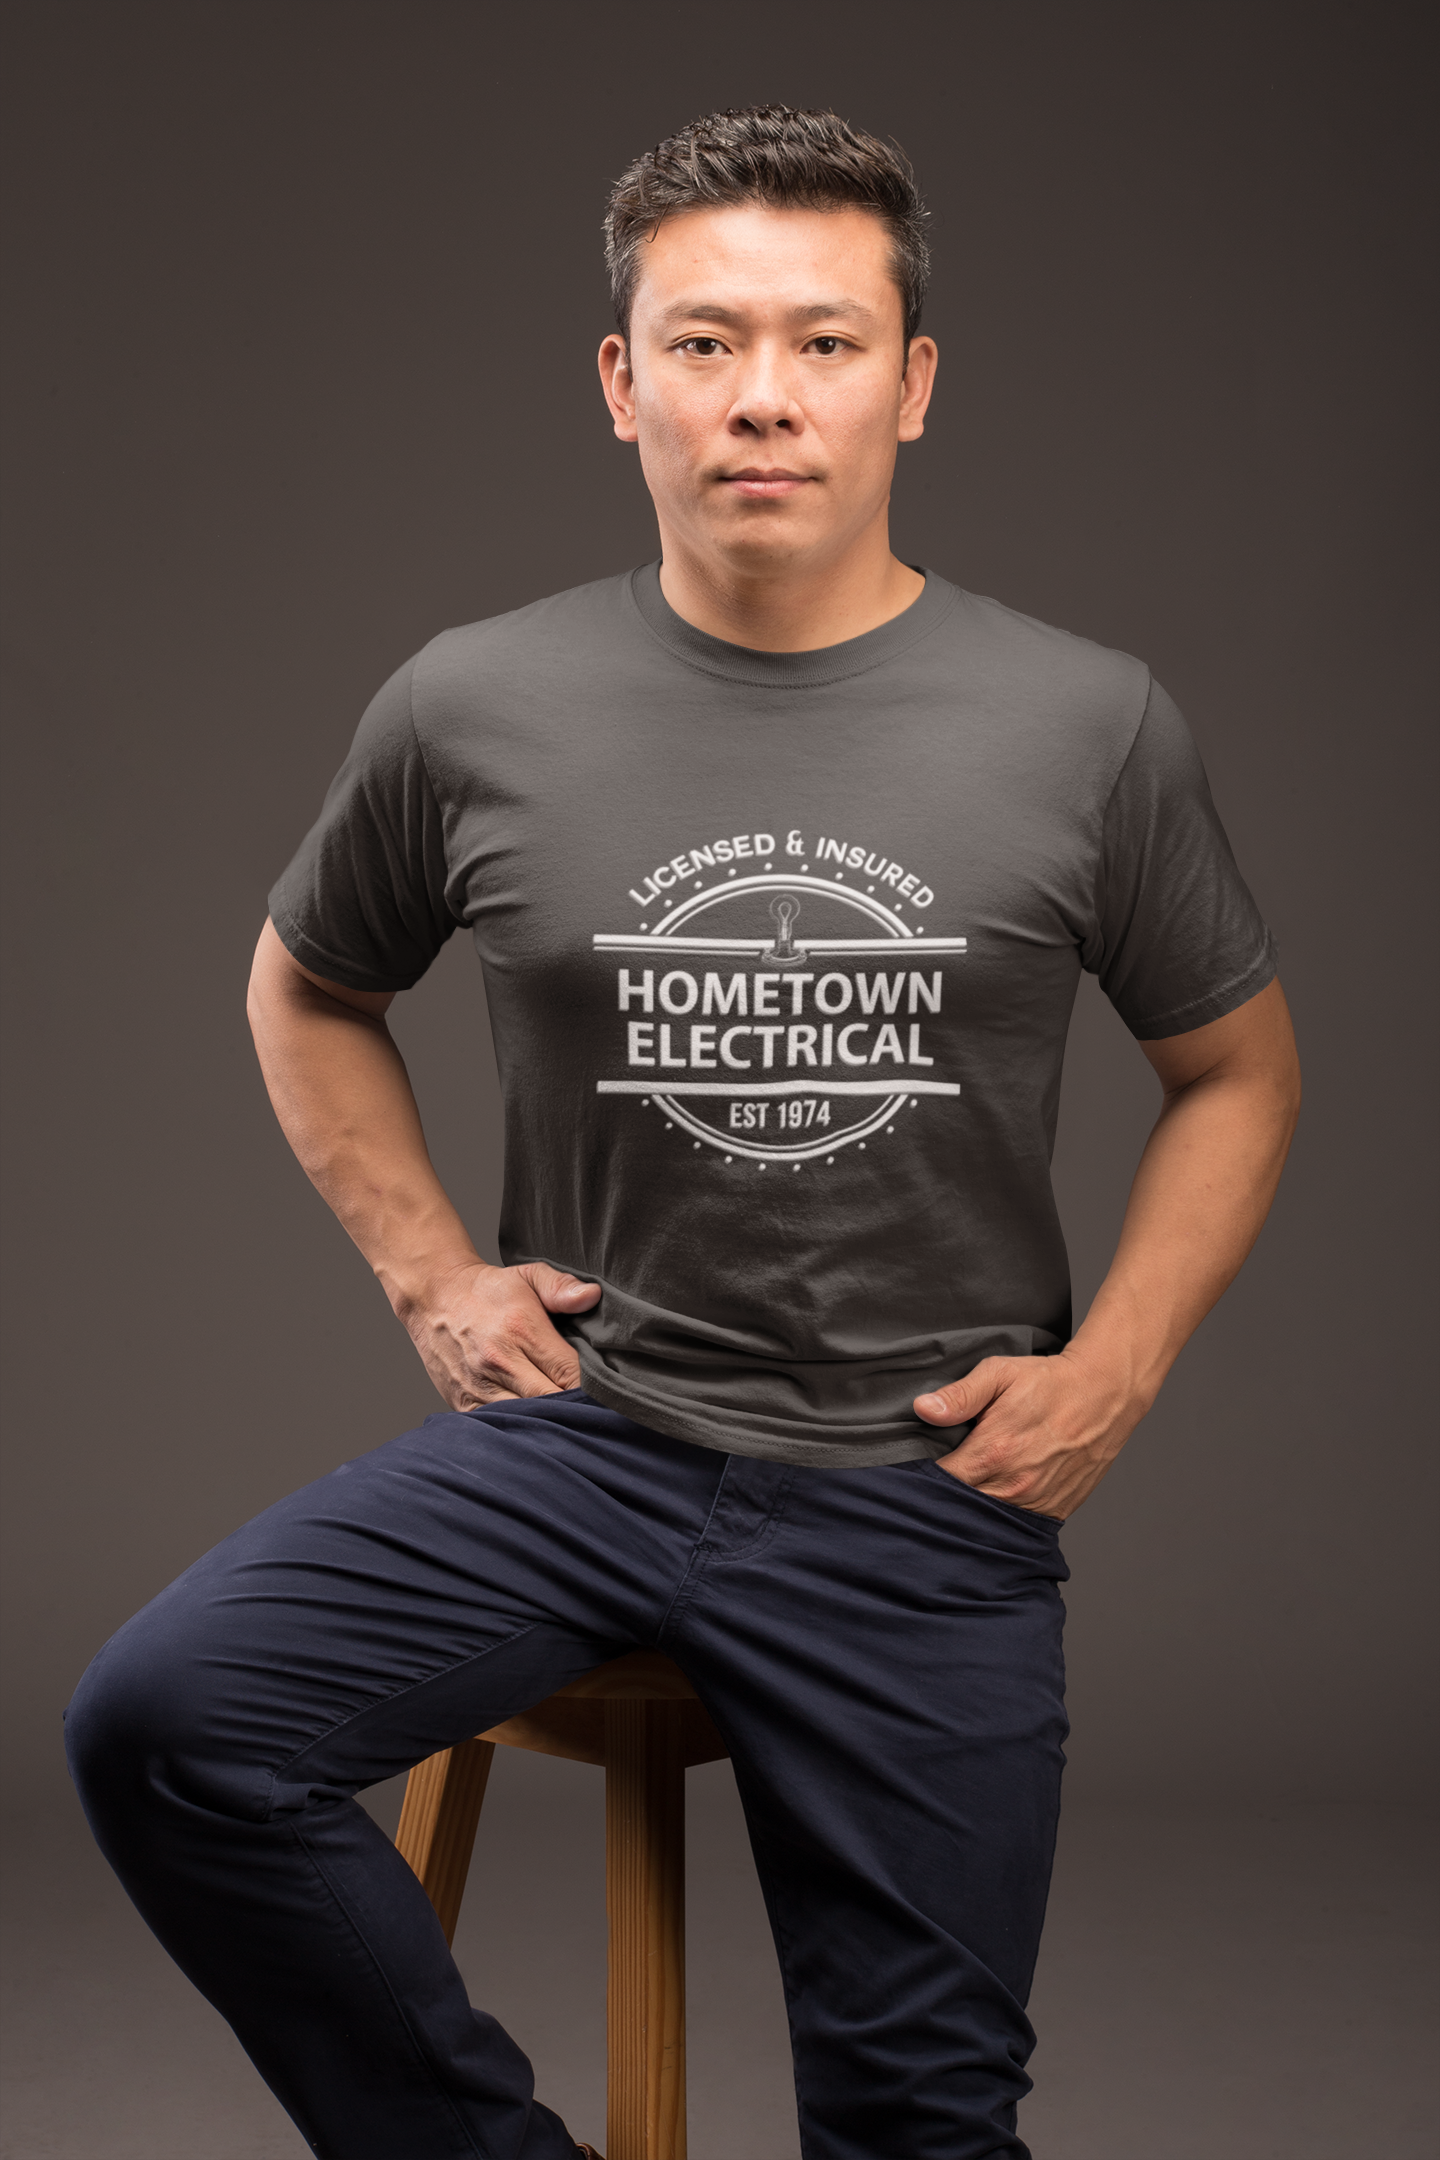 mockup-of-a-man-wearing-a-t-shirt-with-his-hands-in-his-pockets-21236.png